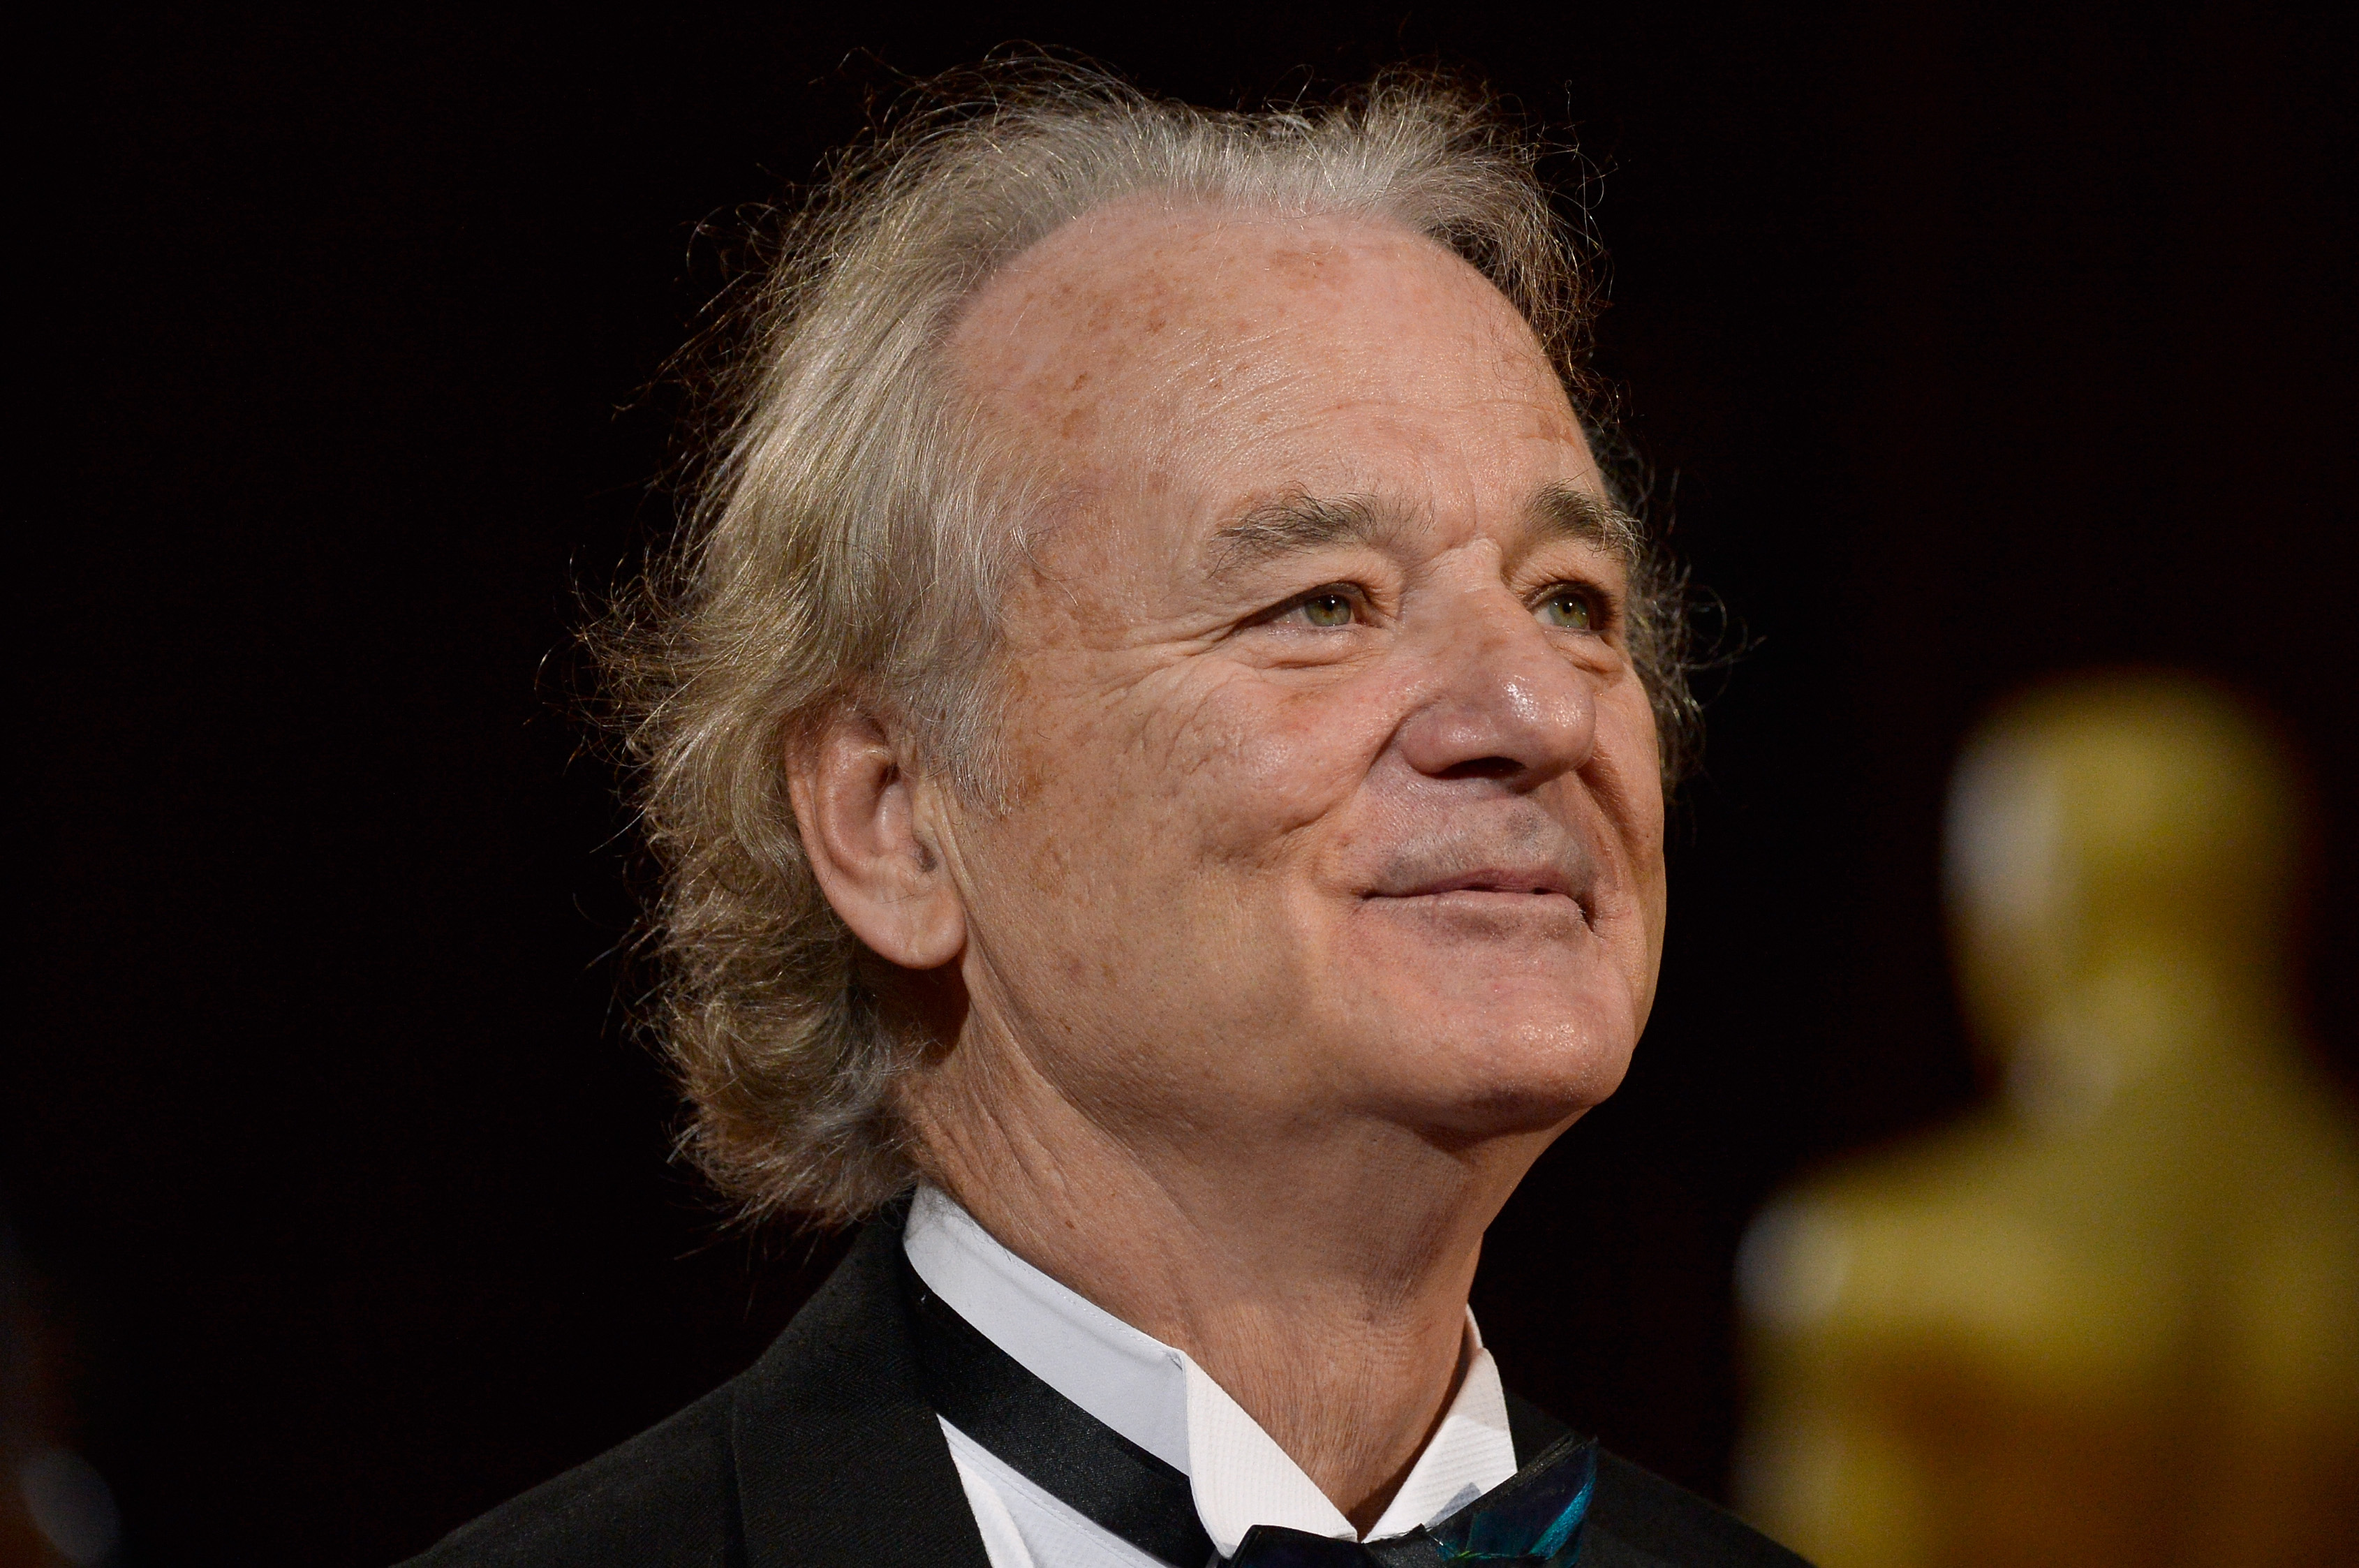 Actor Bill Murray attends the Oscars held at Hollywood & Highland Center on March 2, 2014 in Hollywood, California.